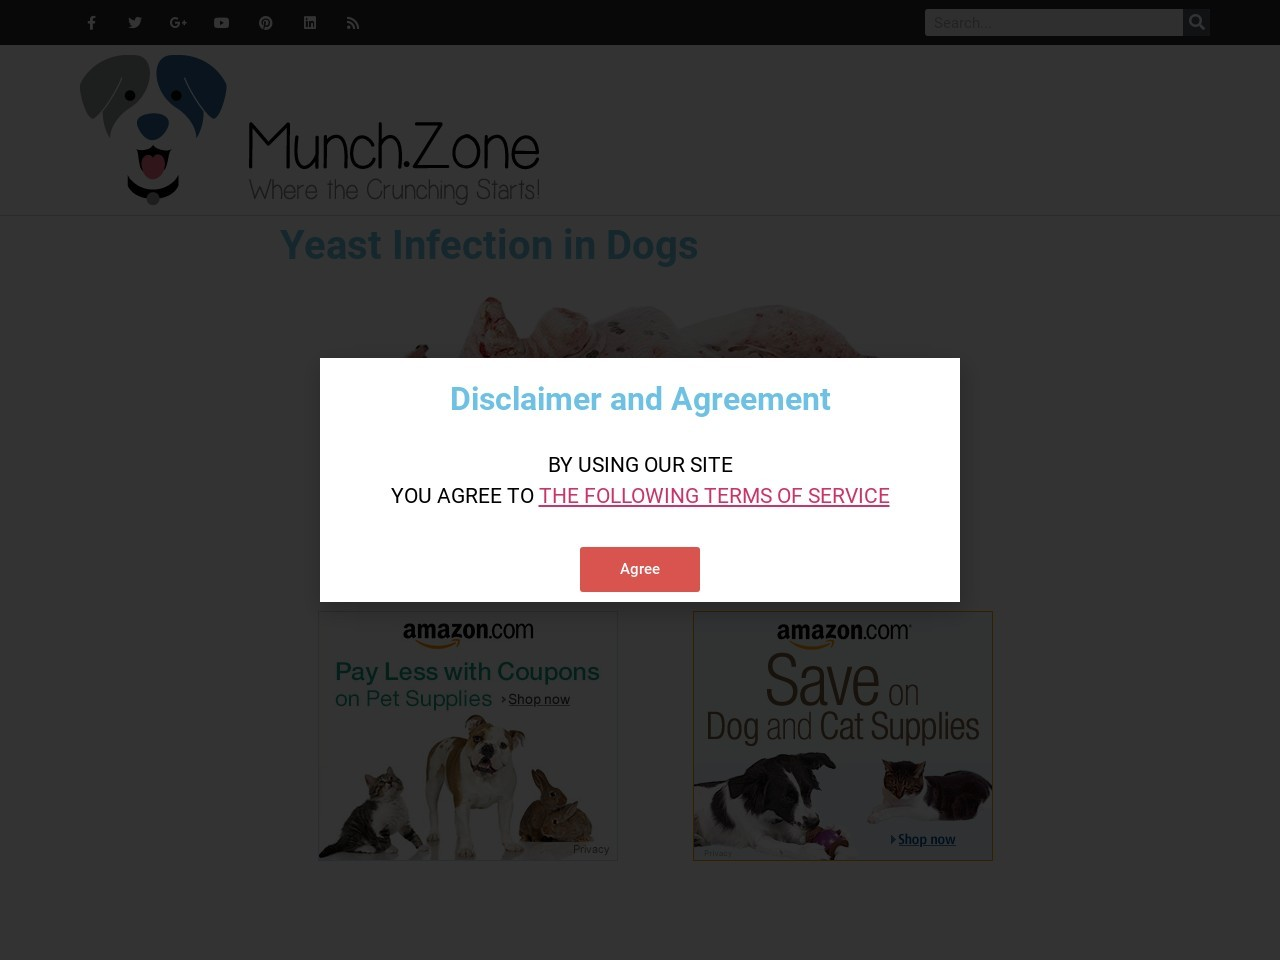 Yeast Infection in Dogs | The Munch Zone